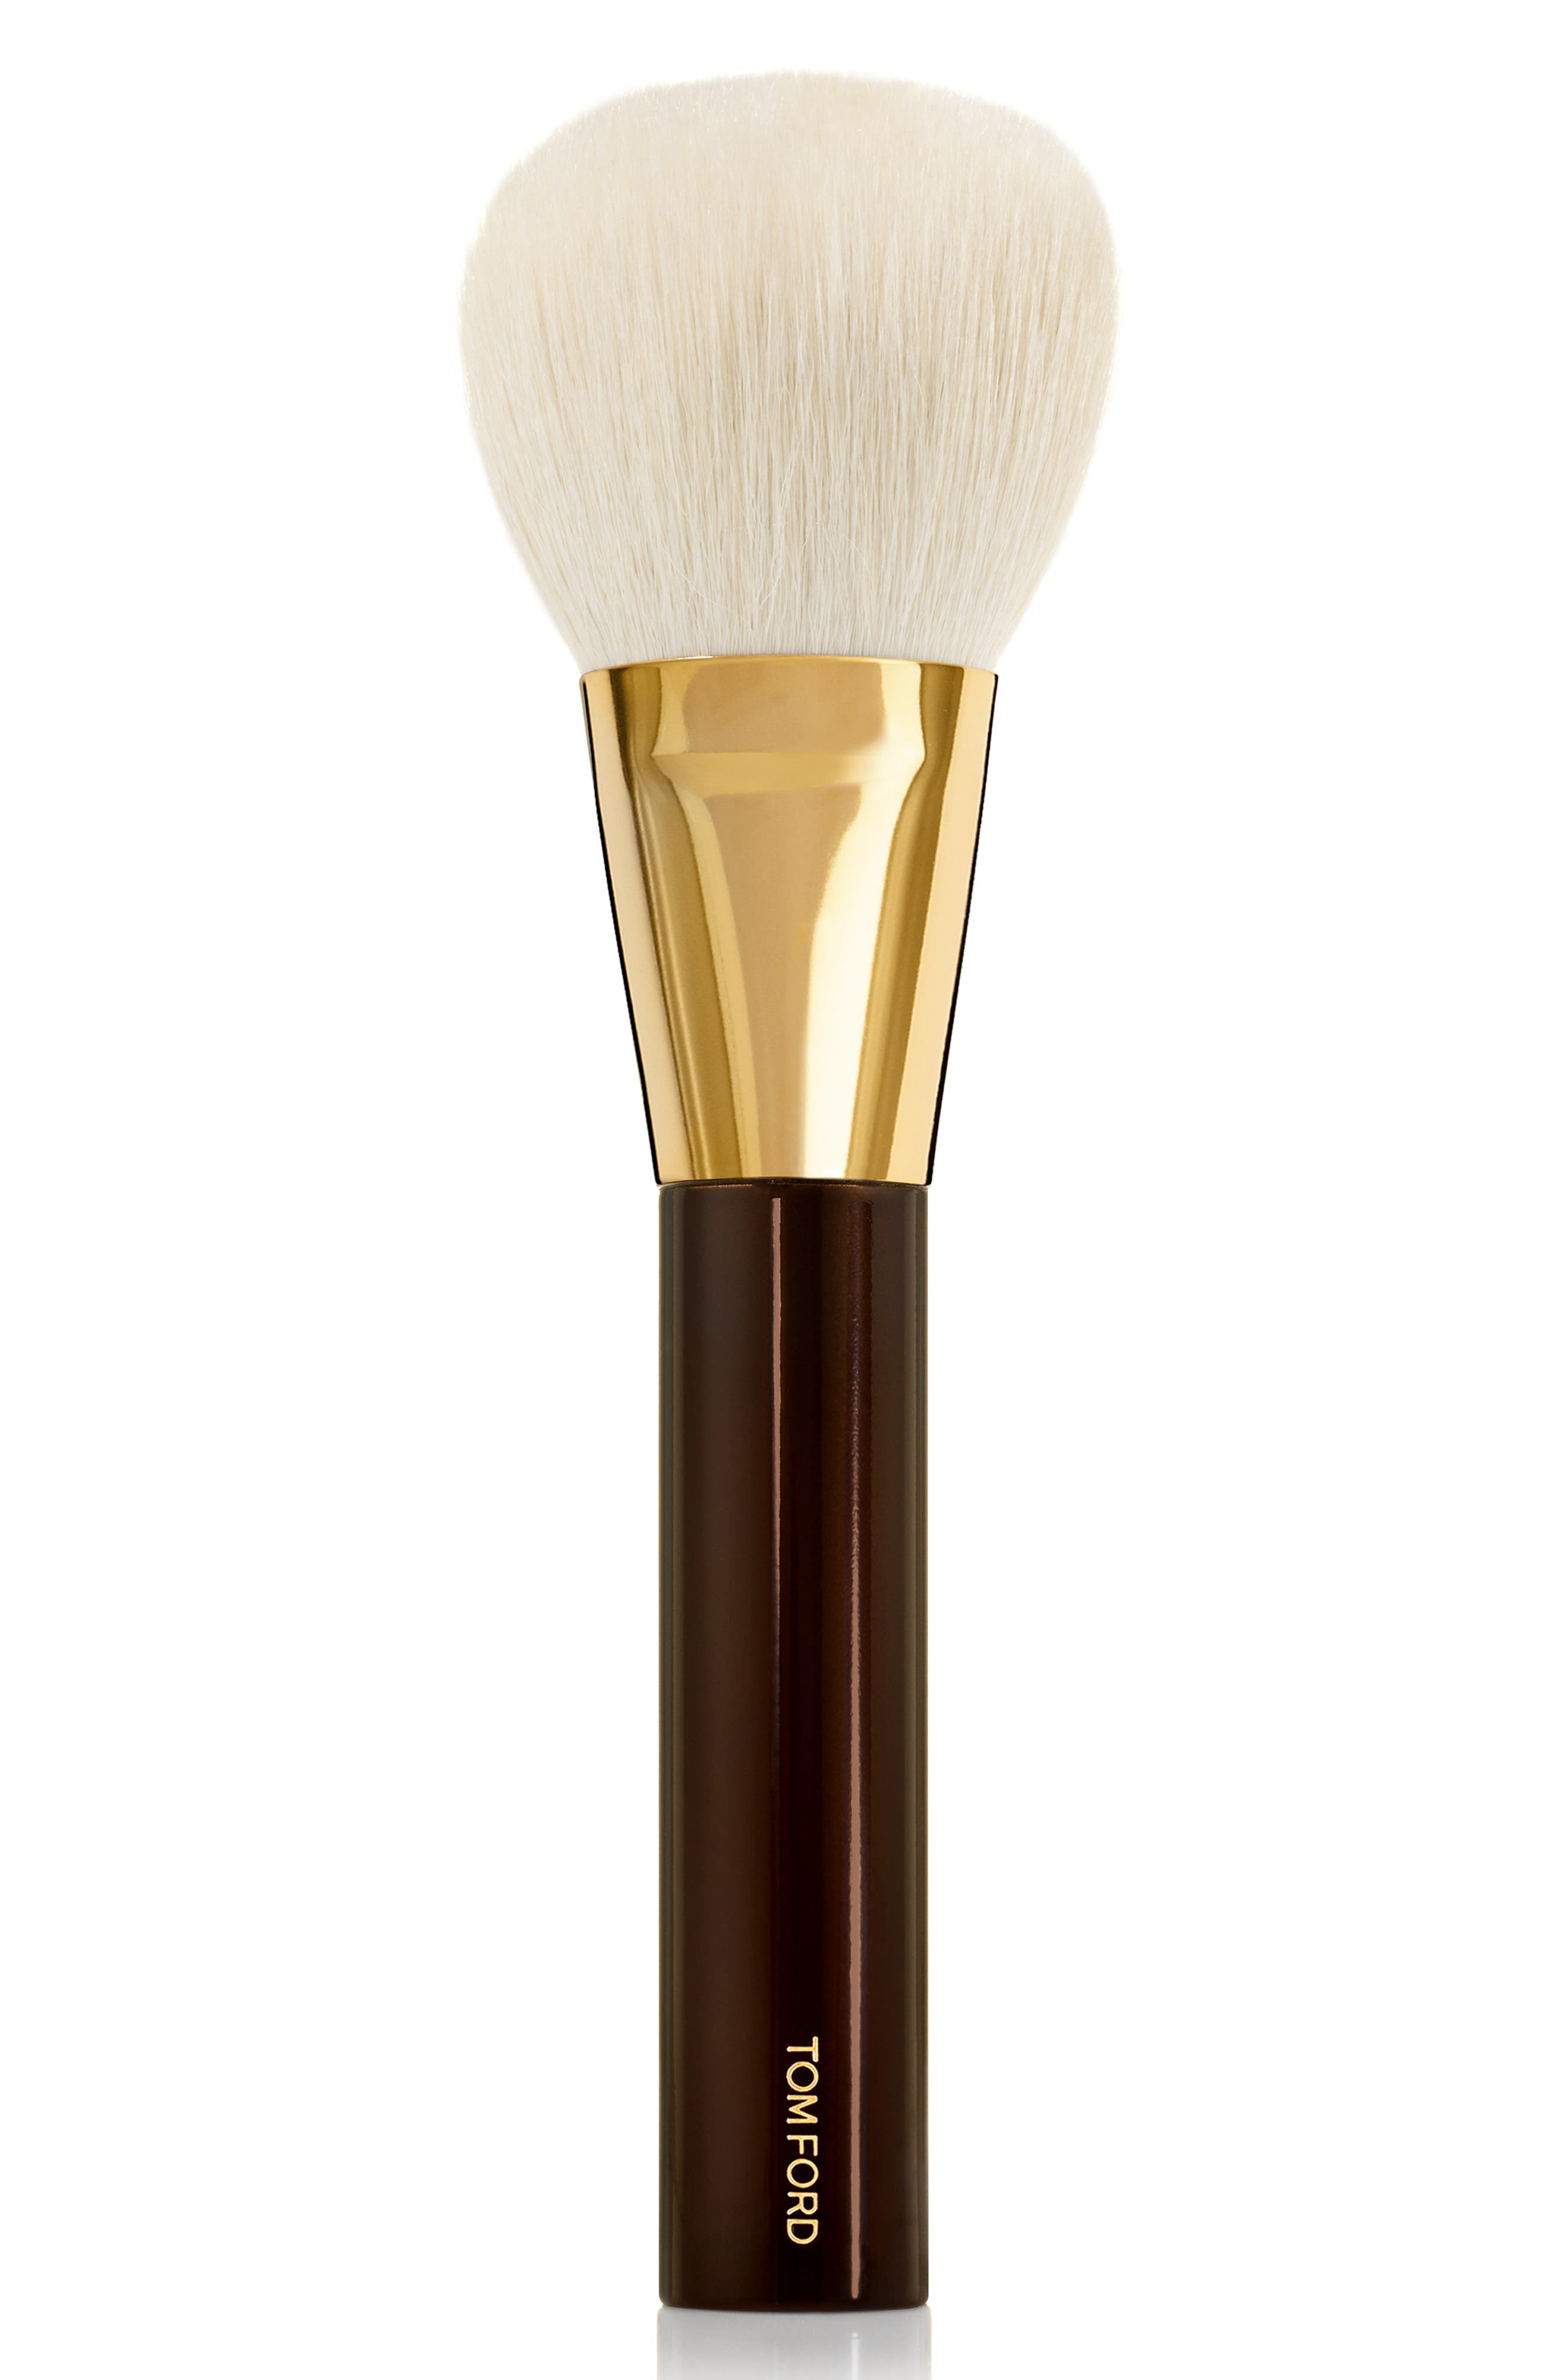 #05 Bronzer Brush, Main, color, 000